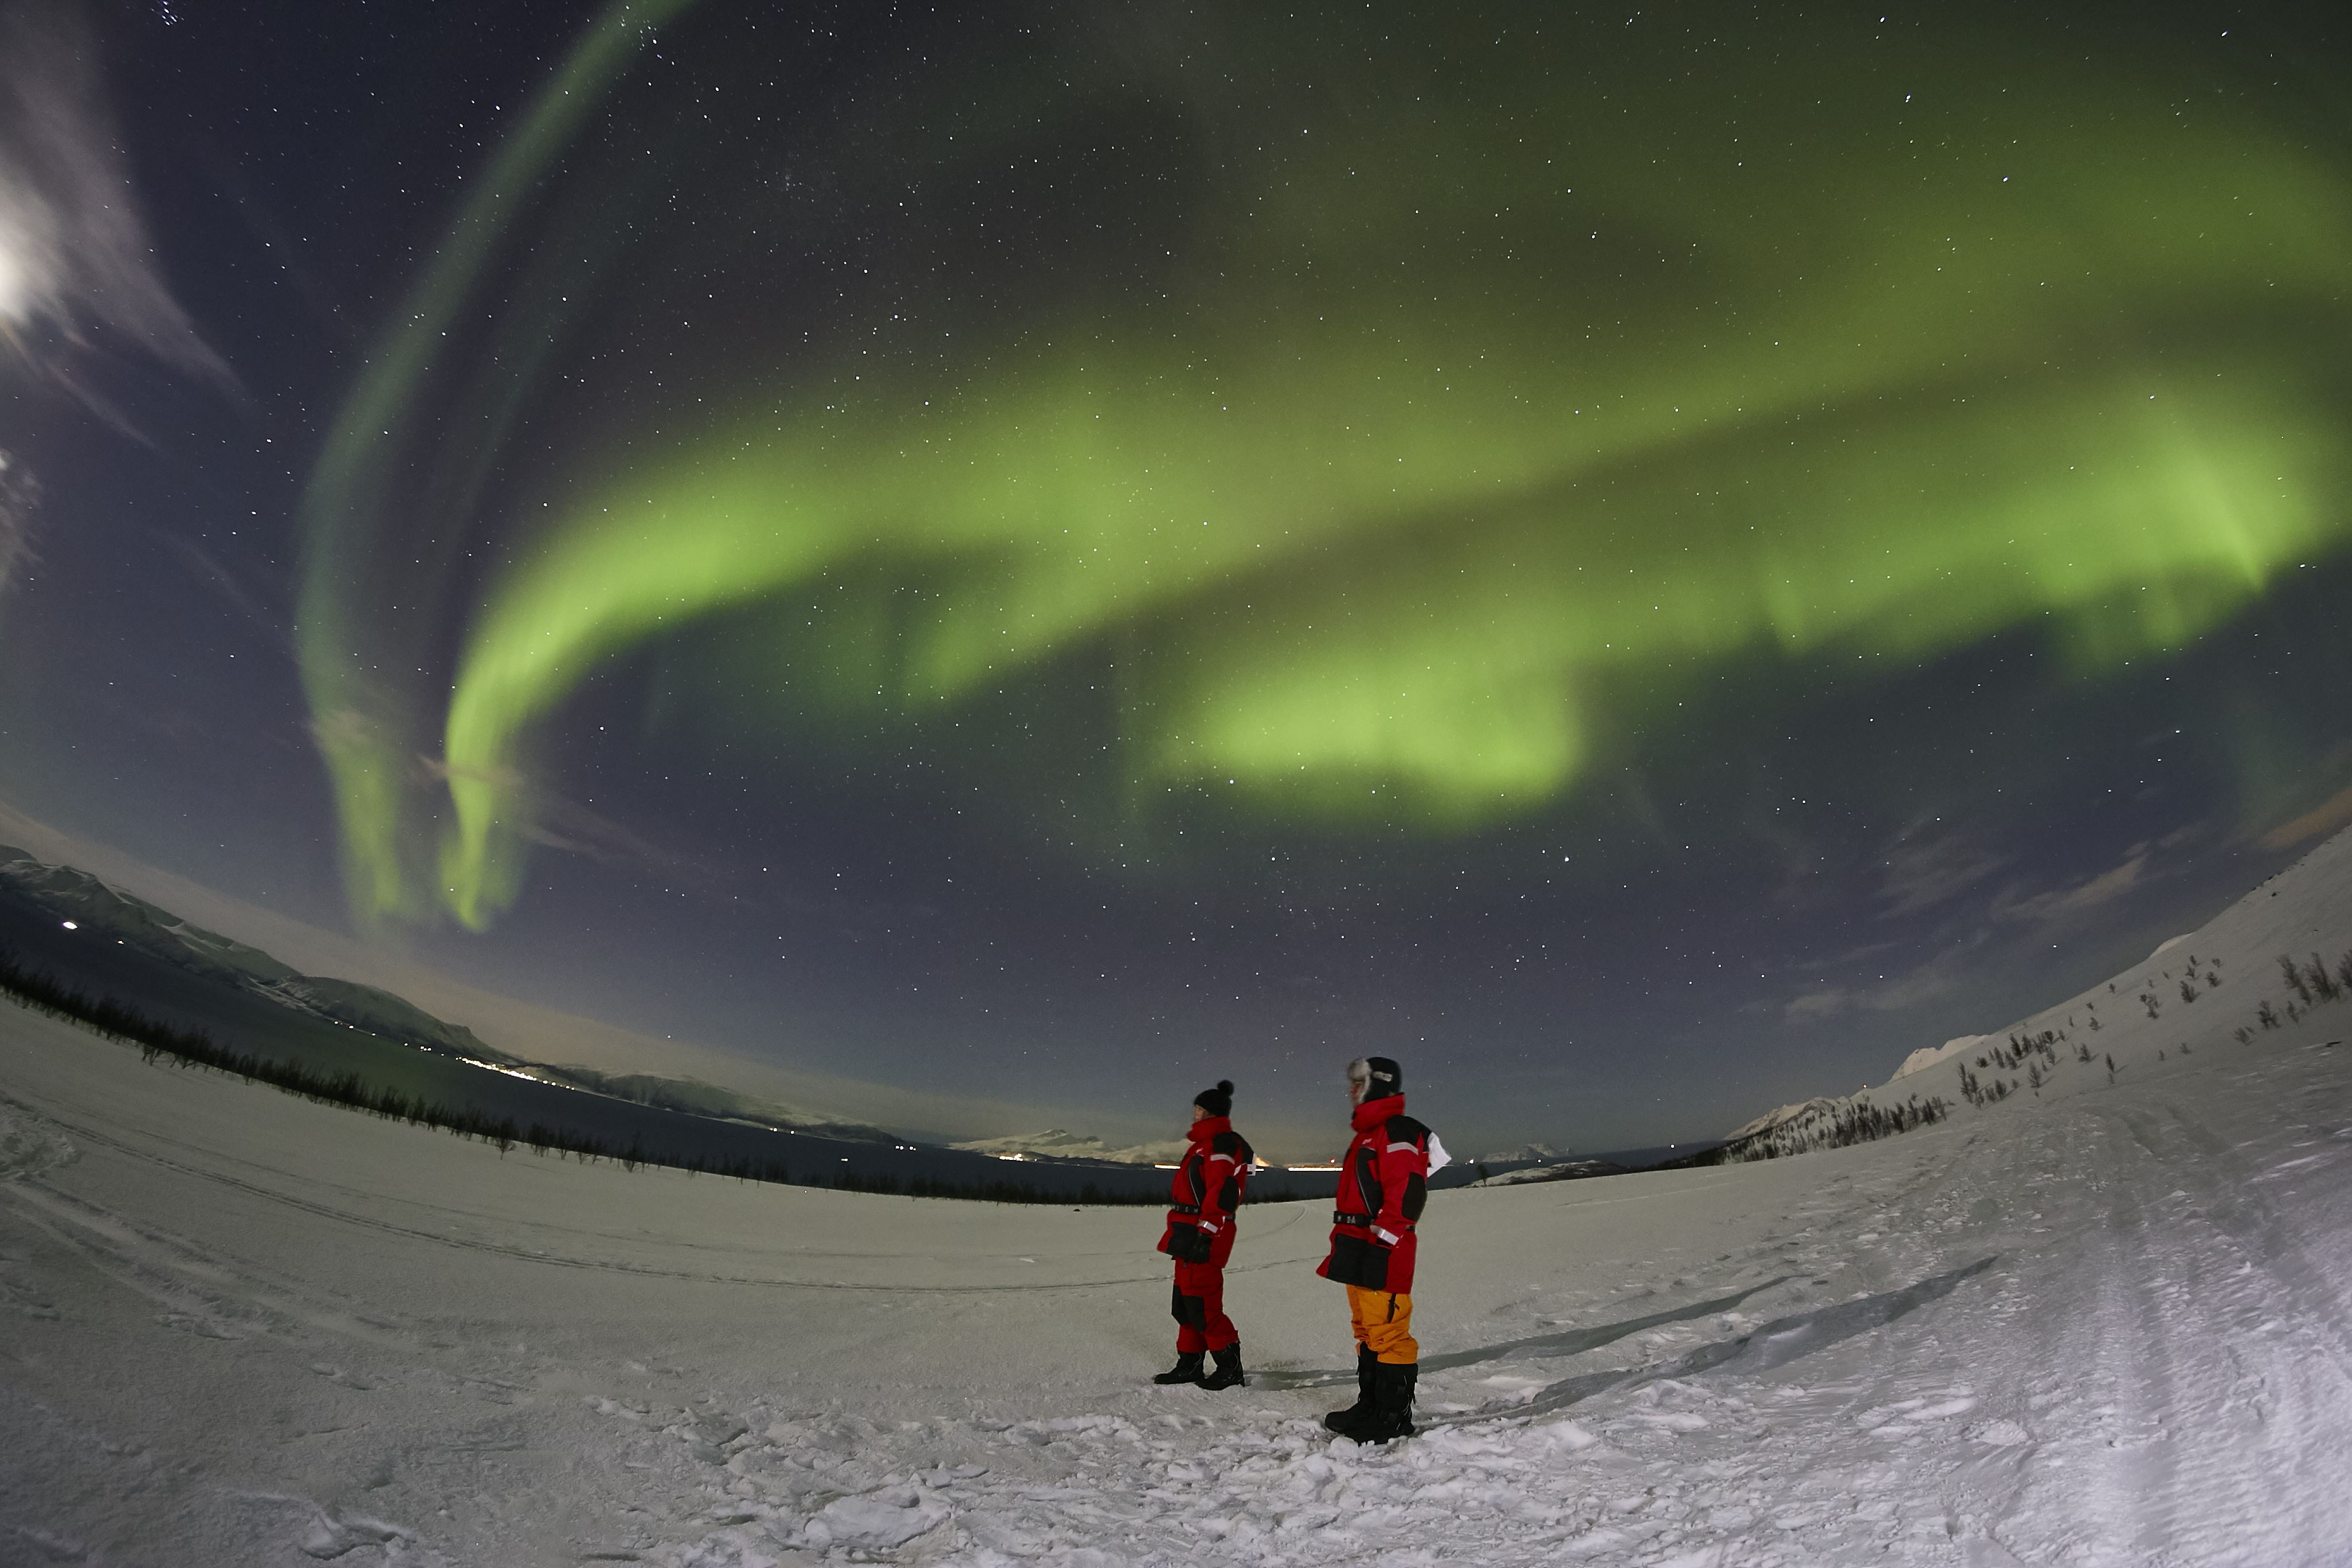 Aurora hunting by foot, car or boat